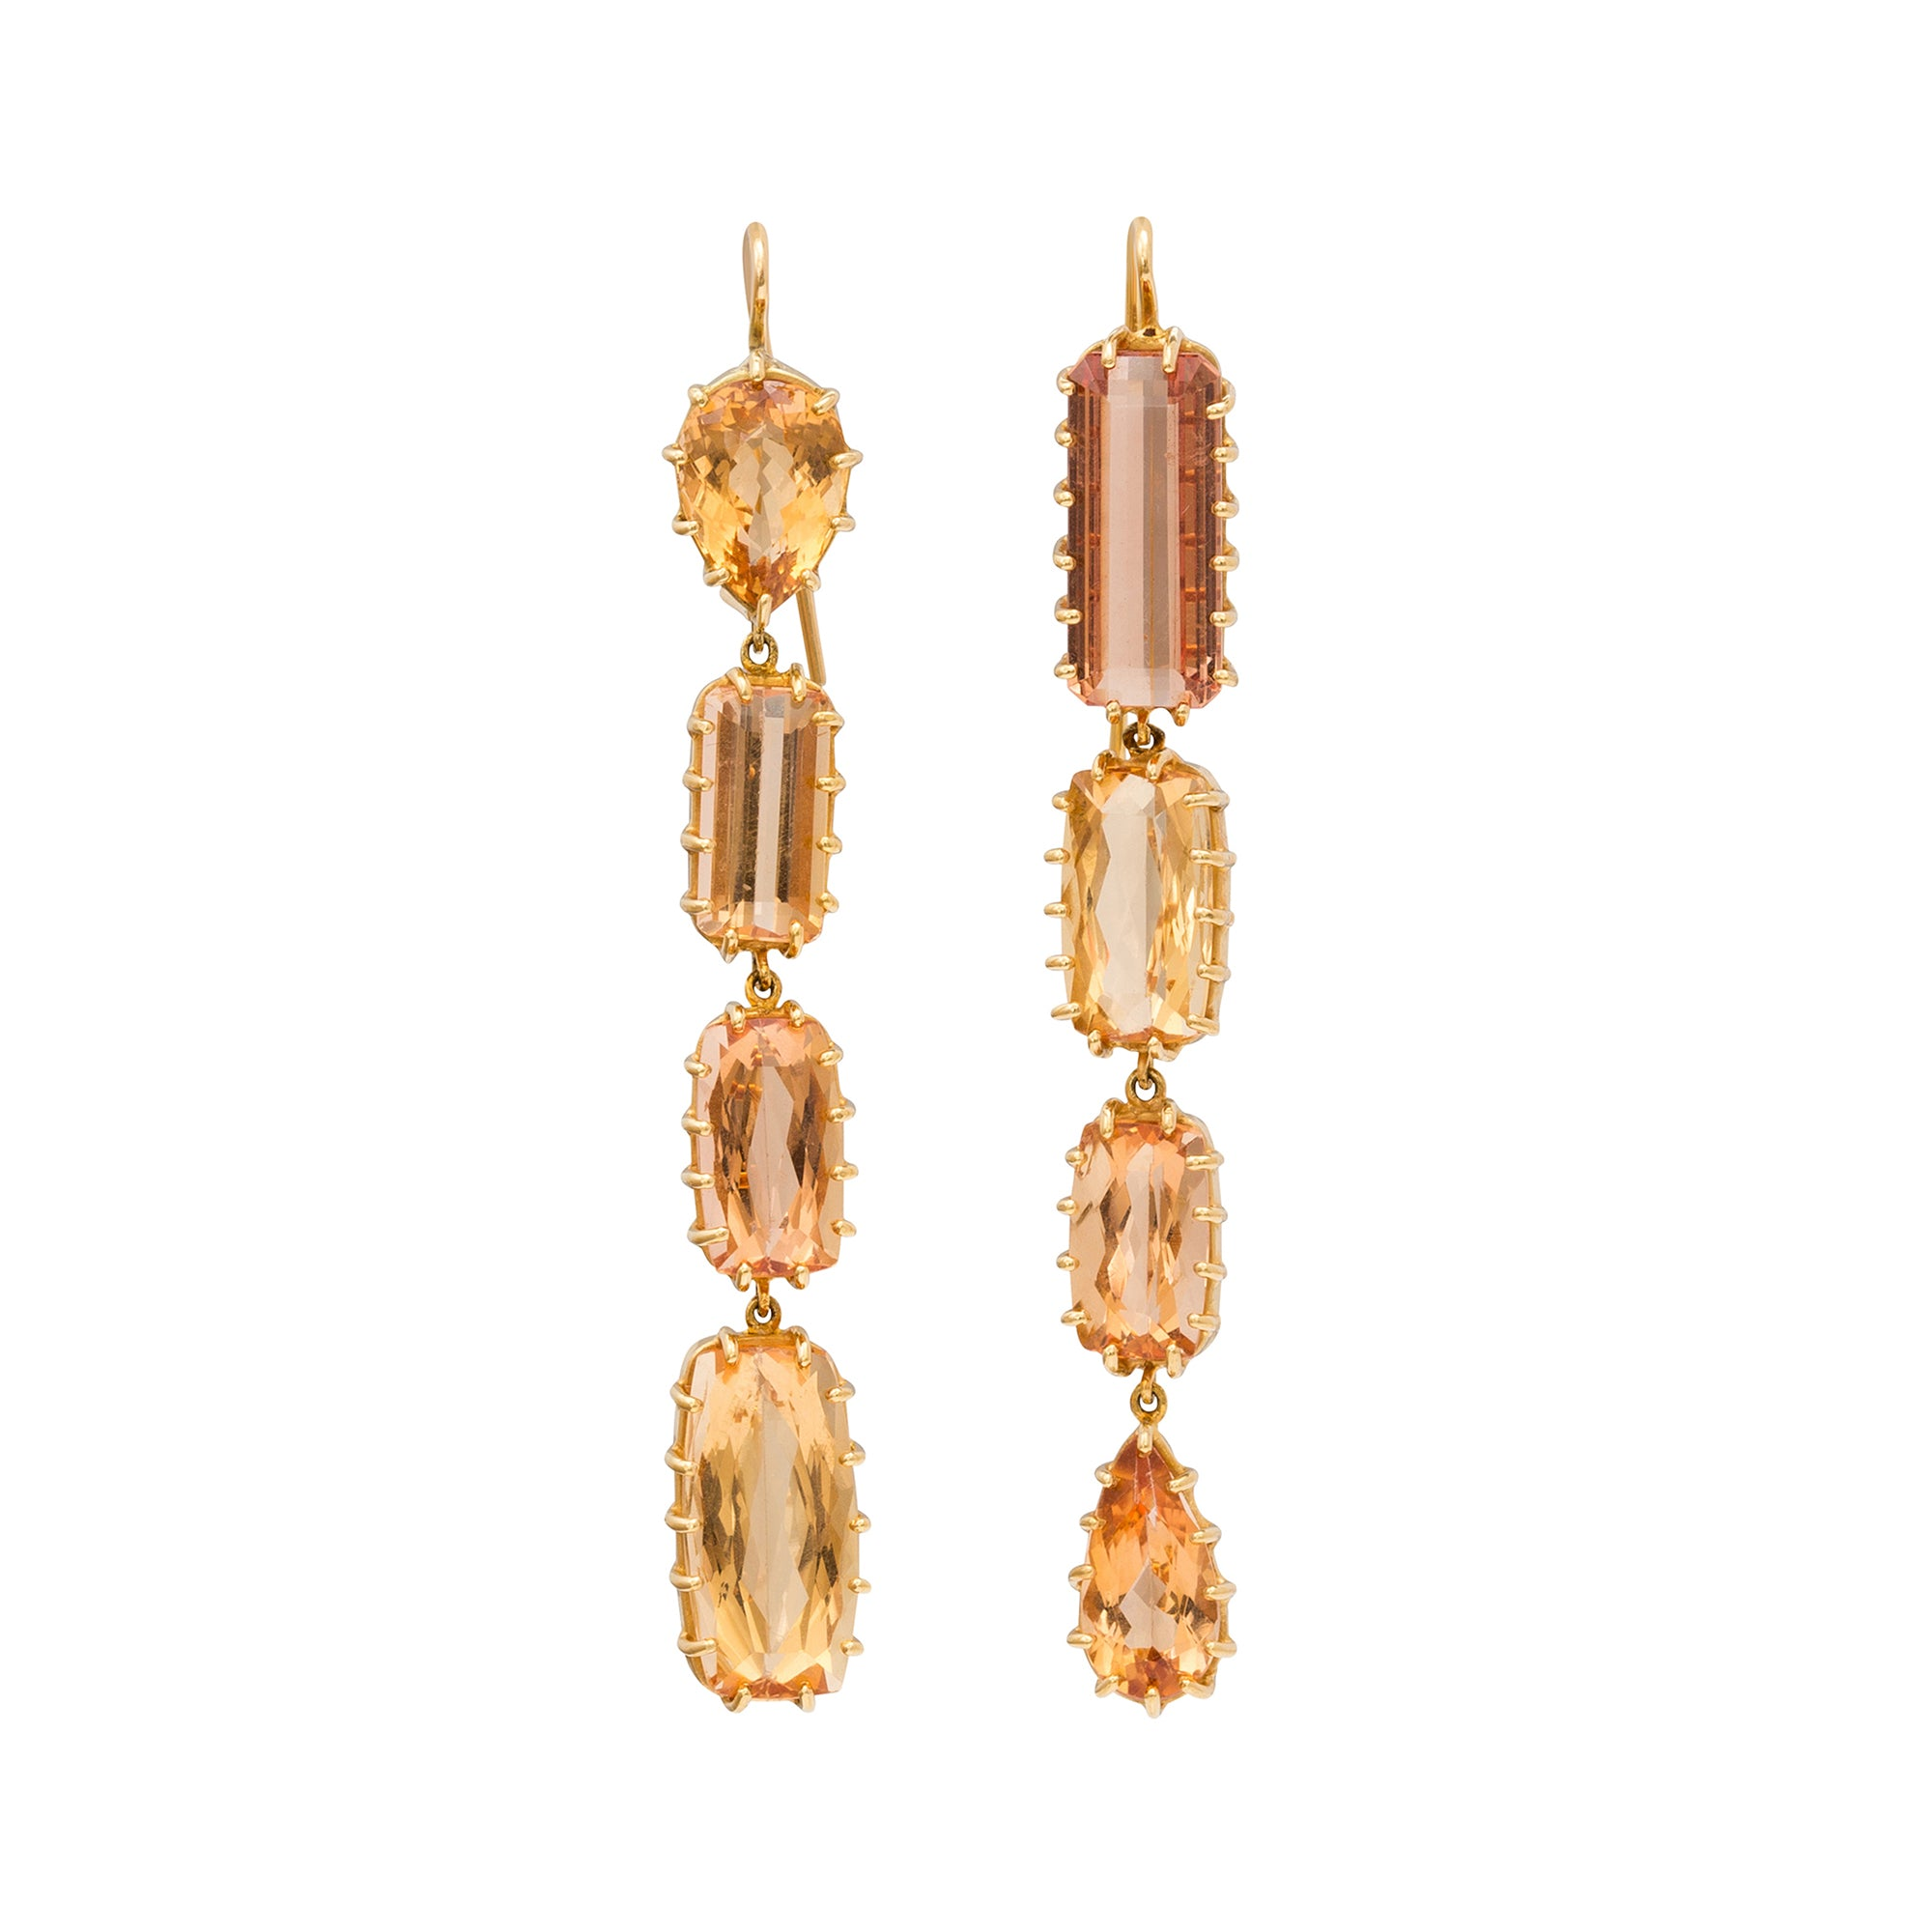 Topaz Earrings by Renee Lewis for Broken English Jewelry